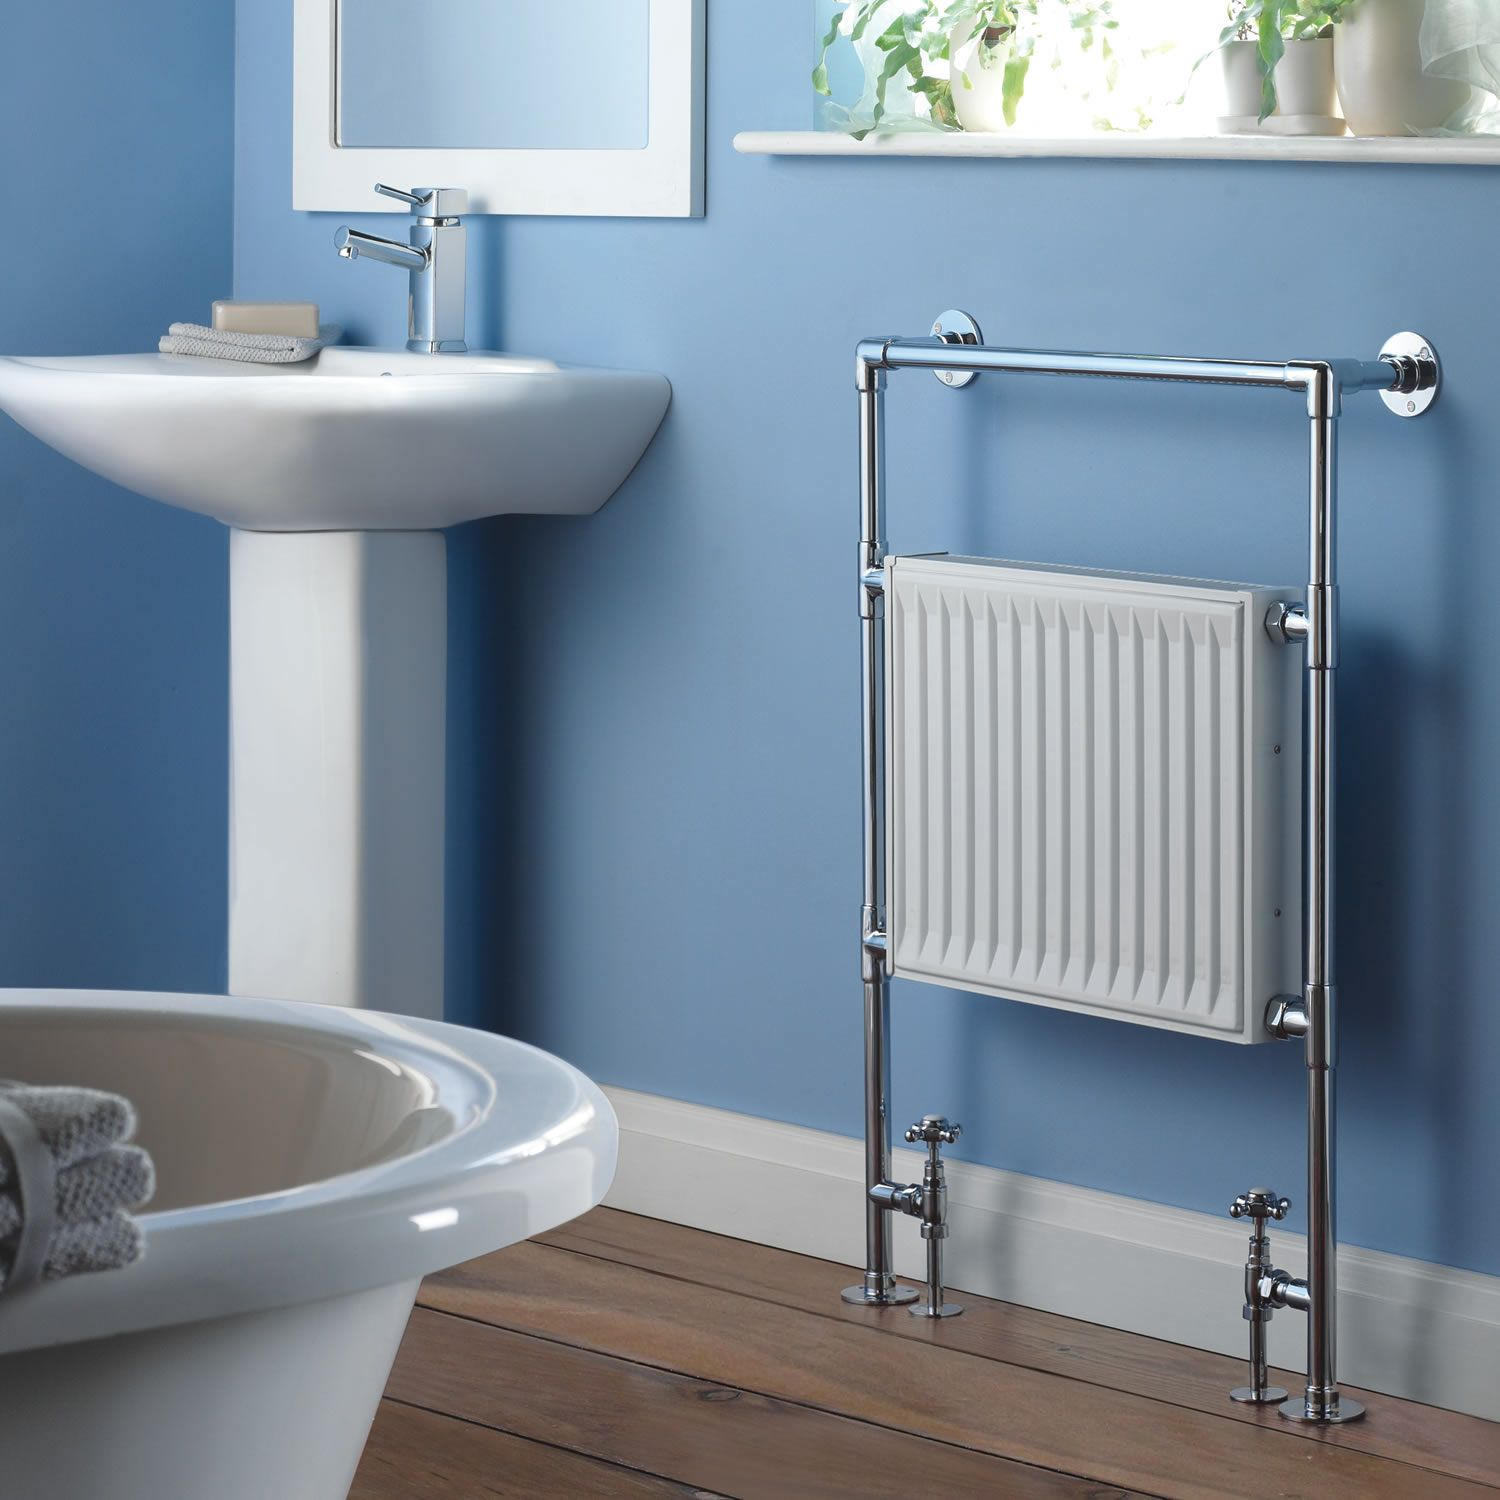 Duchess Hydronic Heated Towel Warmer